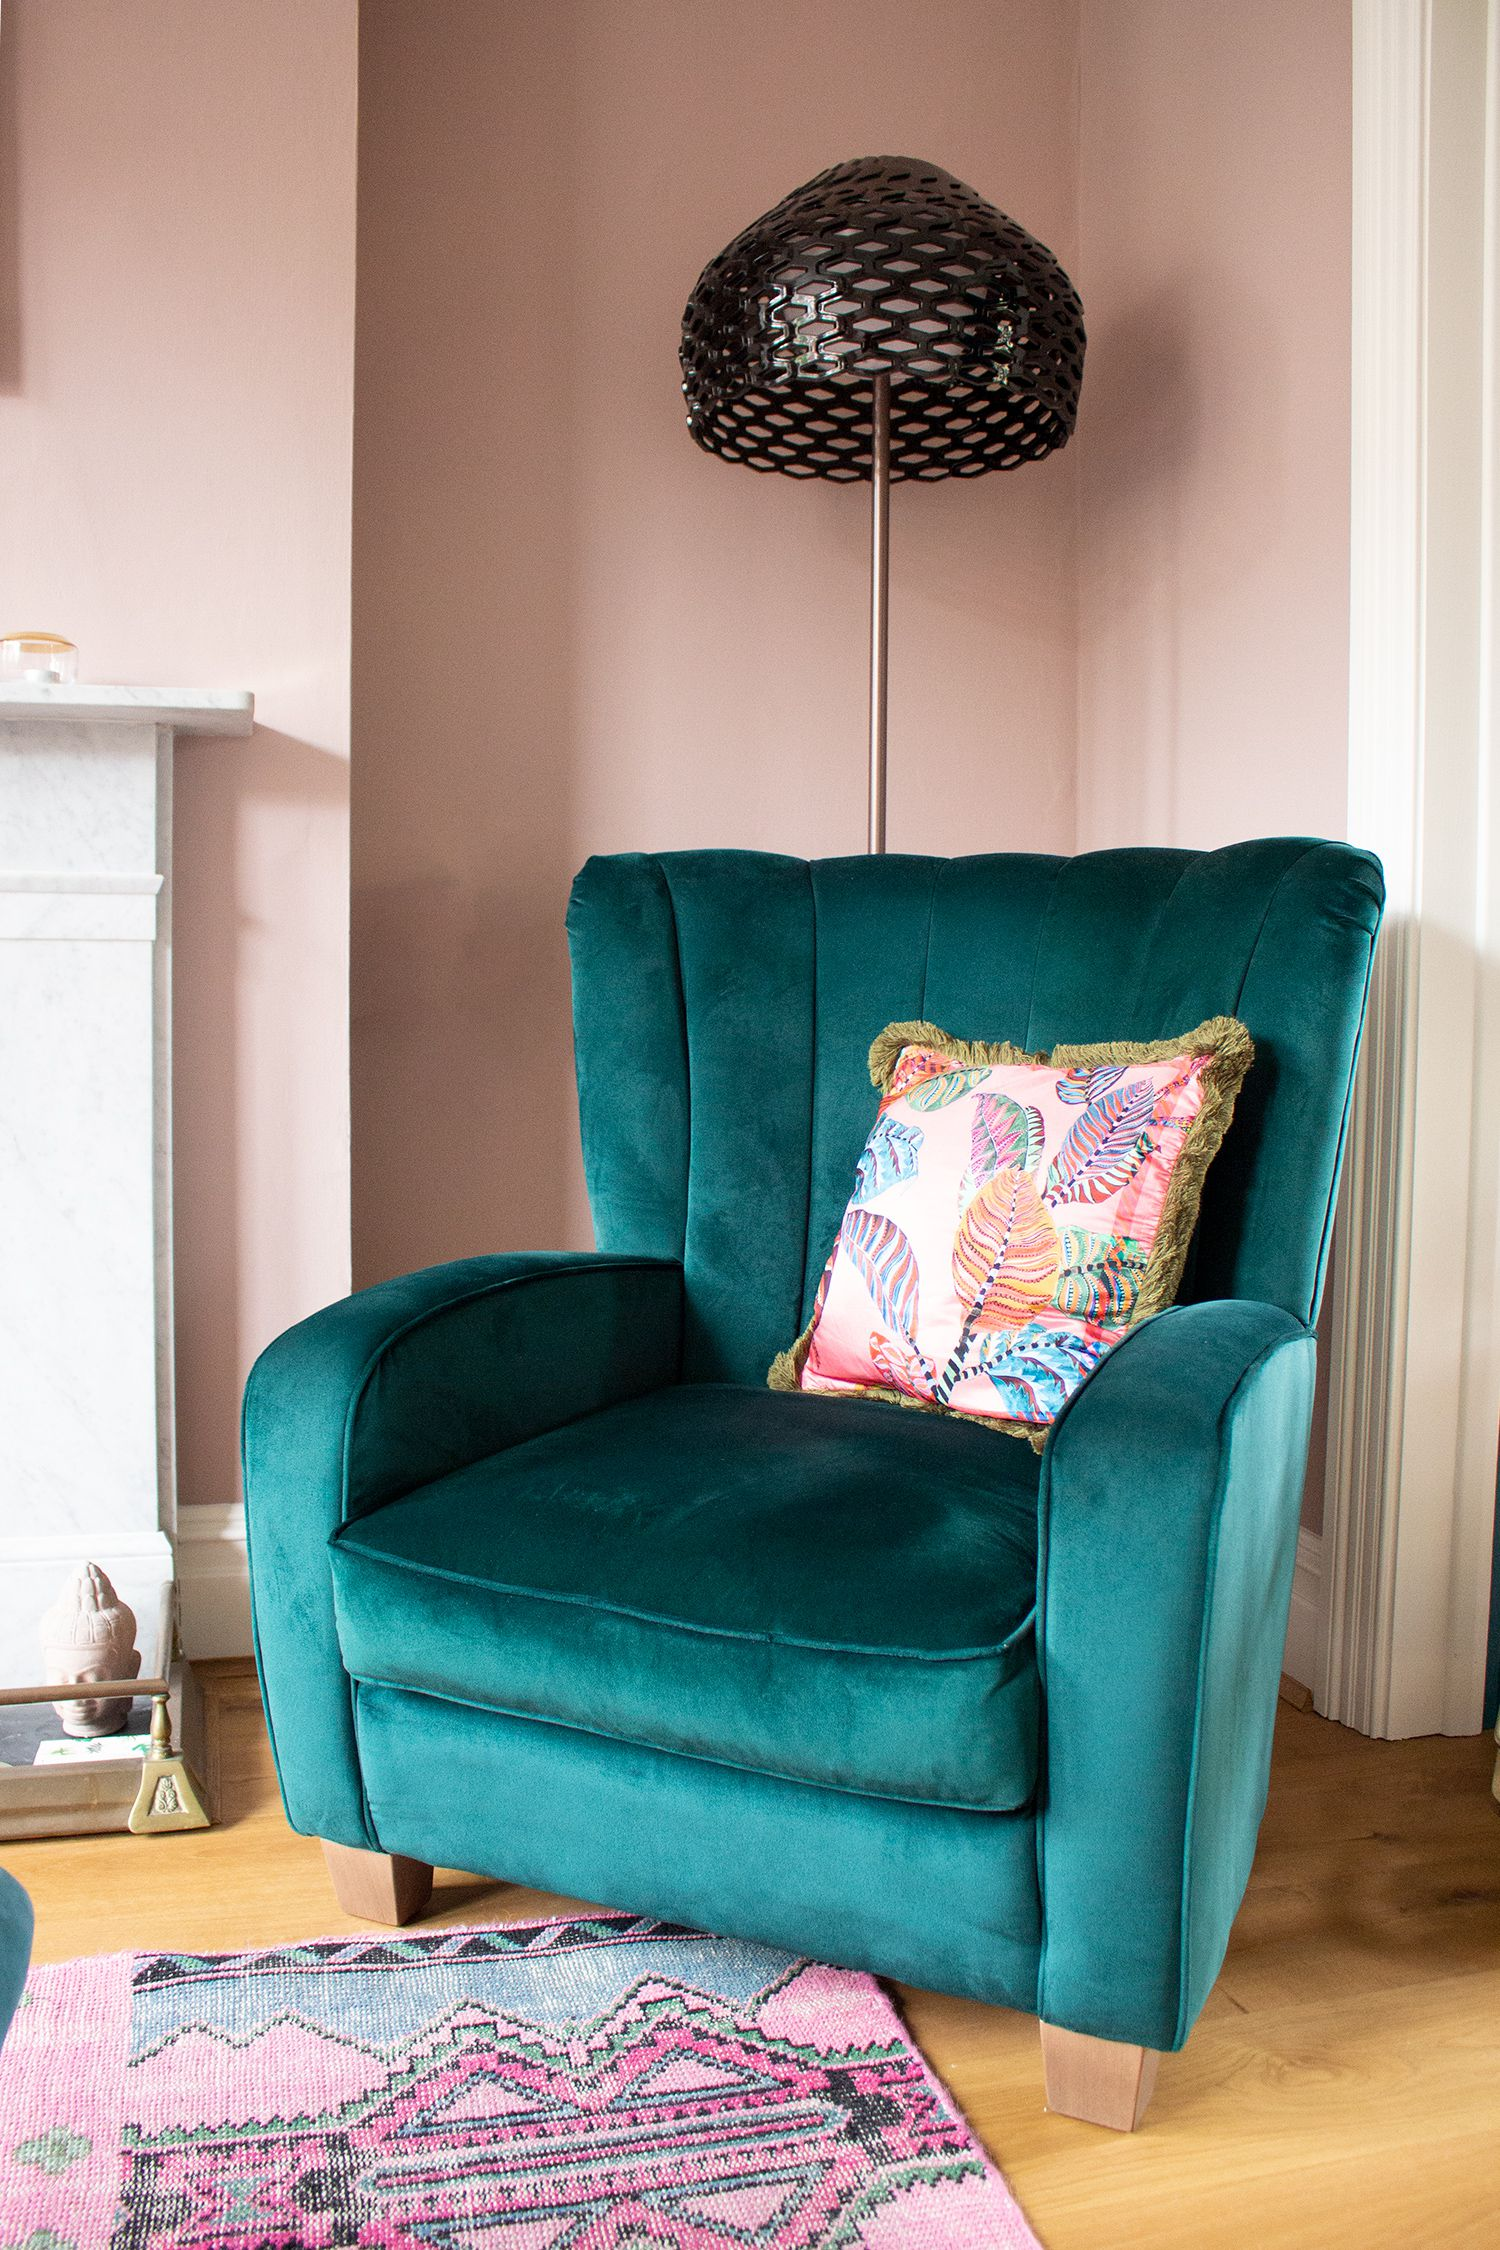 A close up photo of the green velvet armchair in the pink painted room, with a black floor lamp behind it.